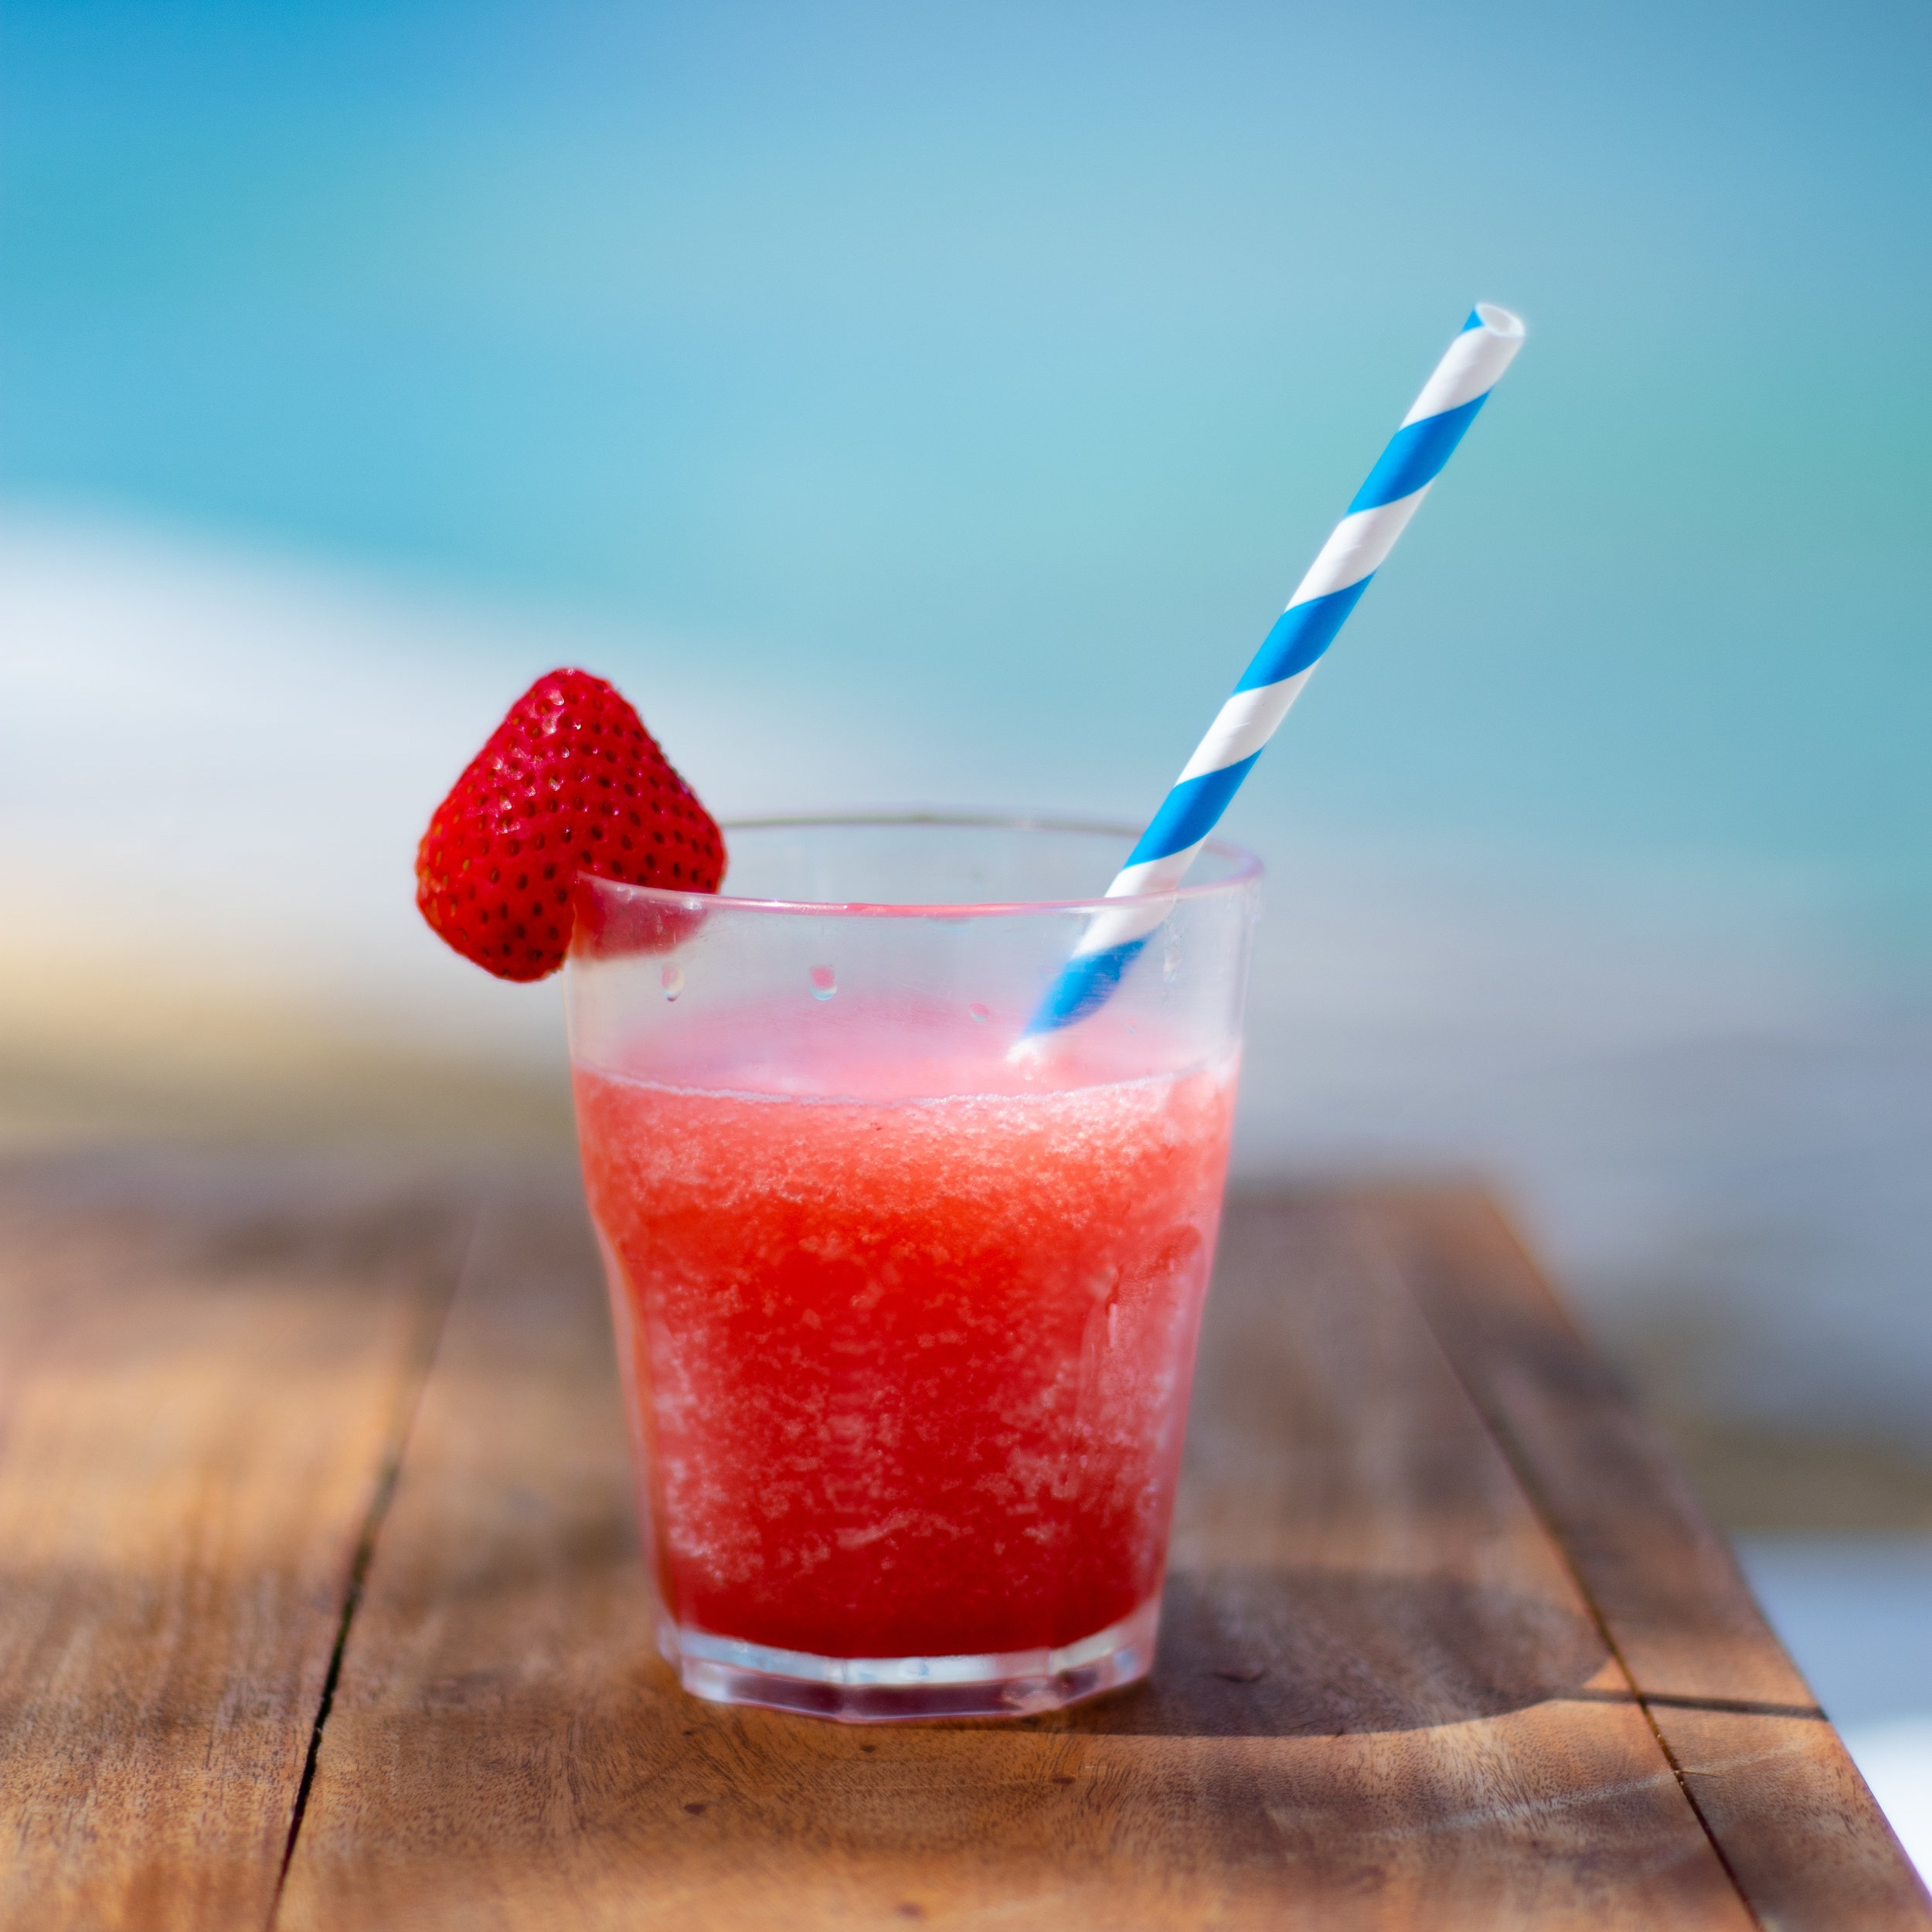 Summer Cocktail List: The 5 Best Alcohol Drinks On a Diet - www.biotrust.com